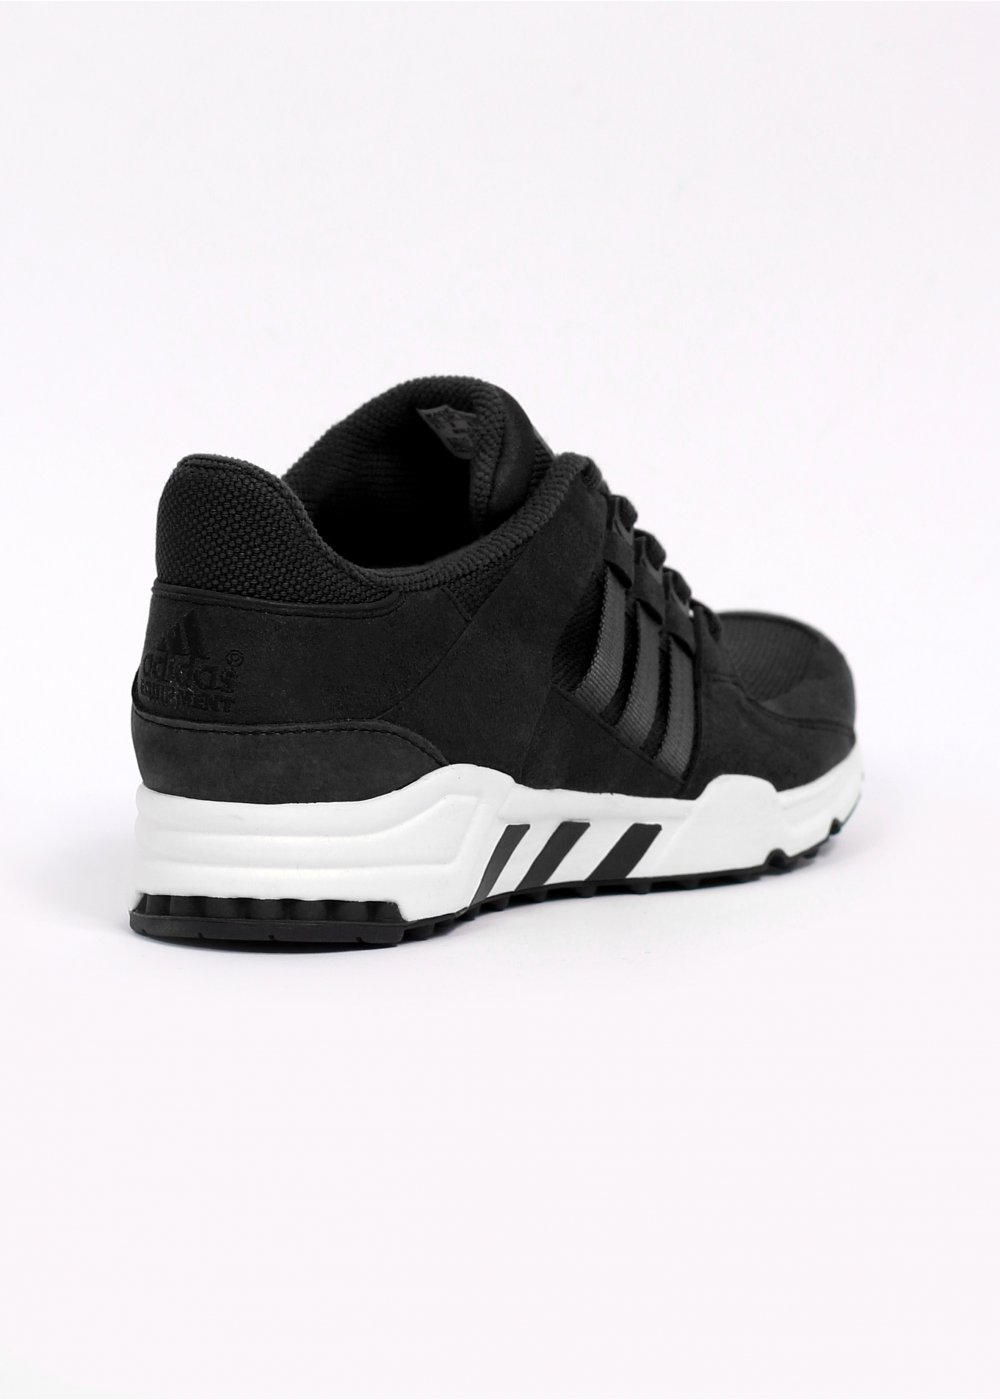 half off 1be8a 6df1e adidas Originals Footwear EQT Equipment Running Support 'New York' Trainers  - Black / White Vapour